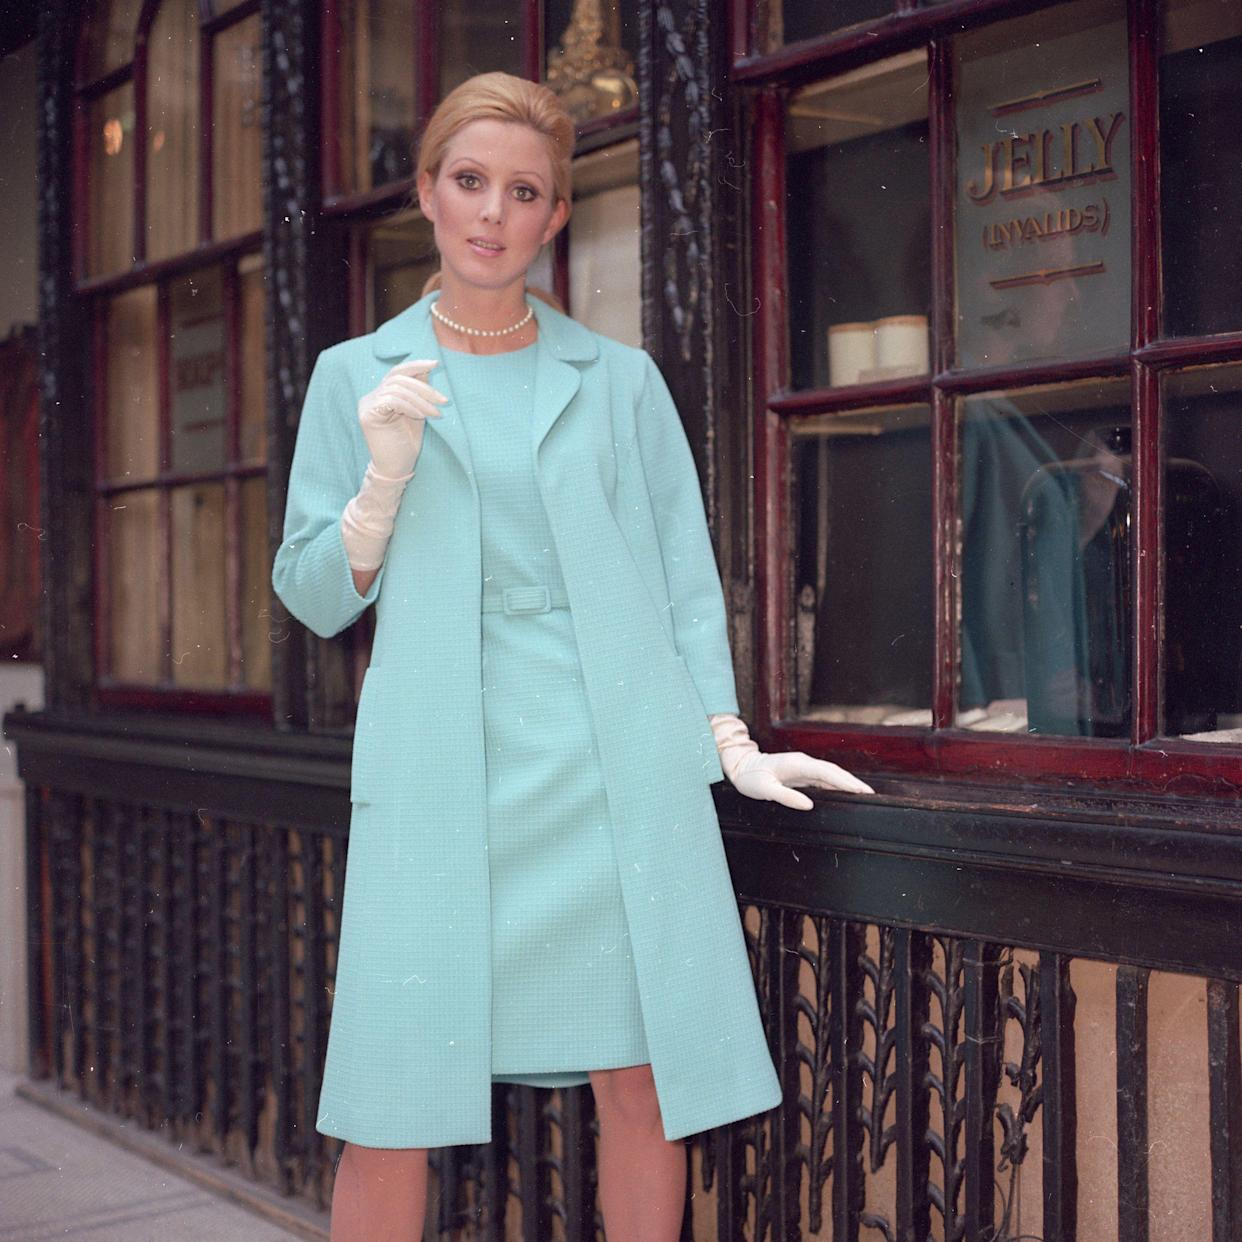 7th July 1969: Ice blue shift dress worn with a loose-fitting coat and long white gloves.